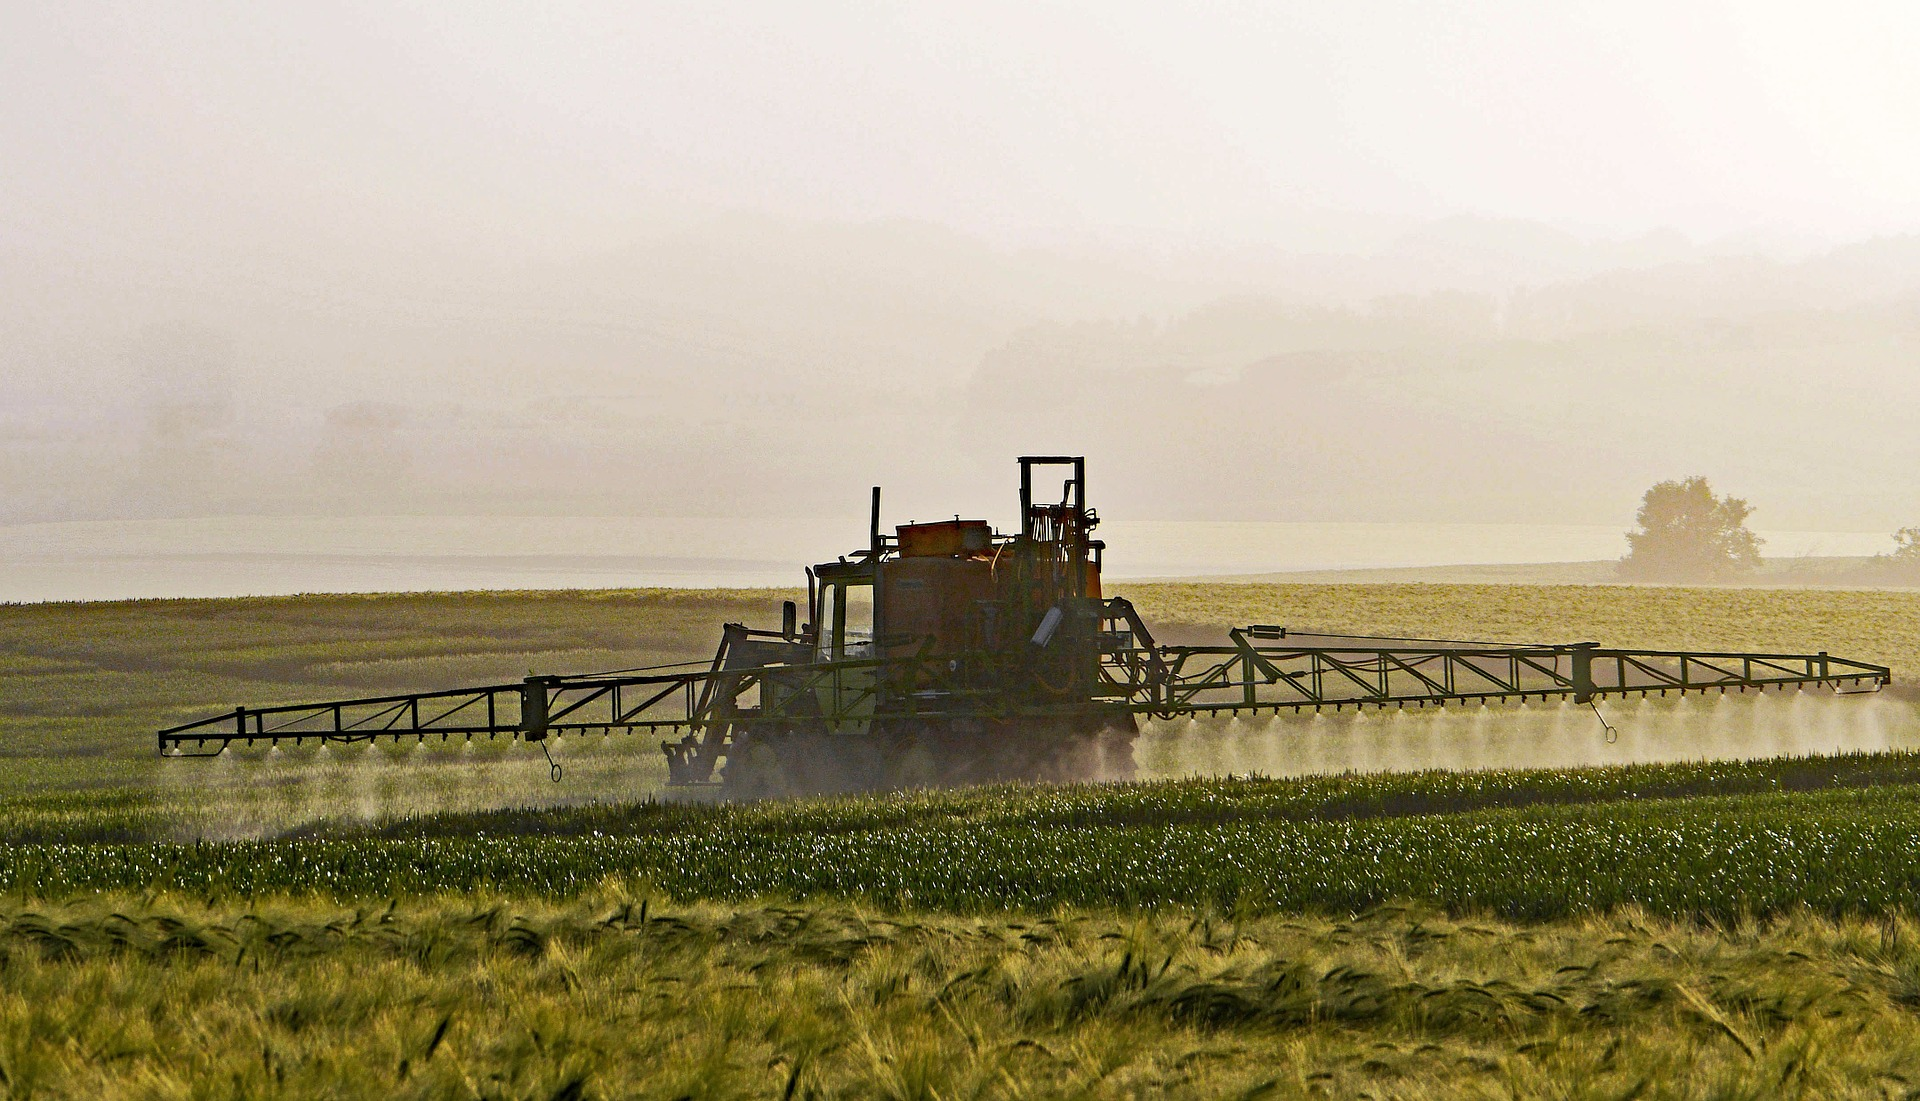 Civil Society Calls on the EU to Prohibit Exports of Banned Pesticides -  Slow Food International